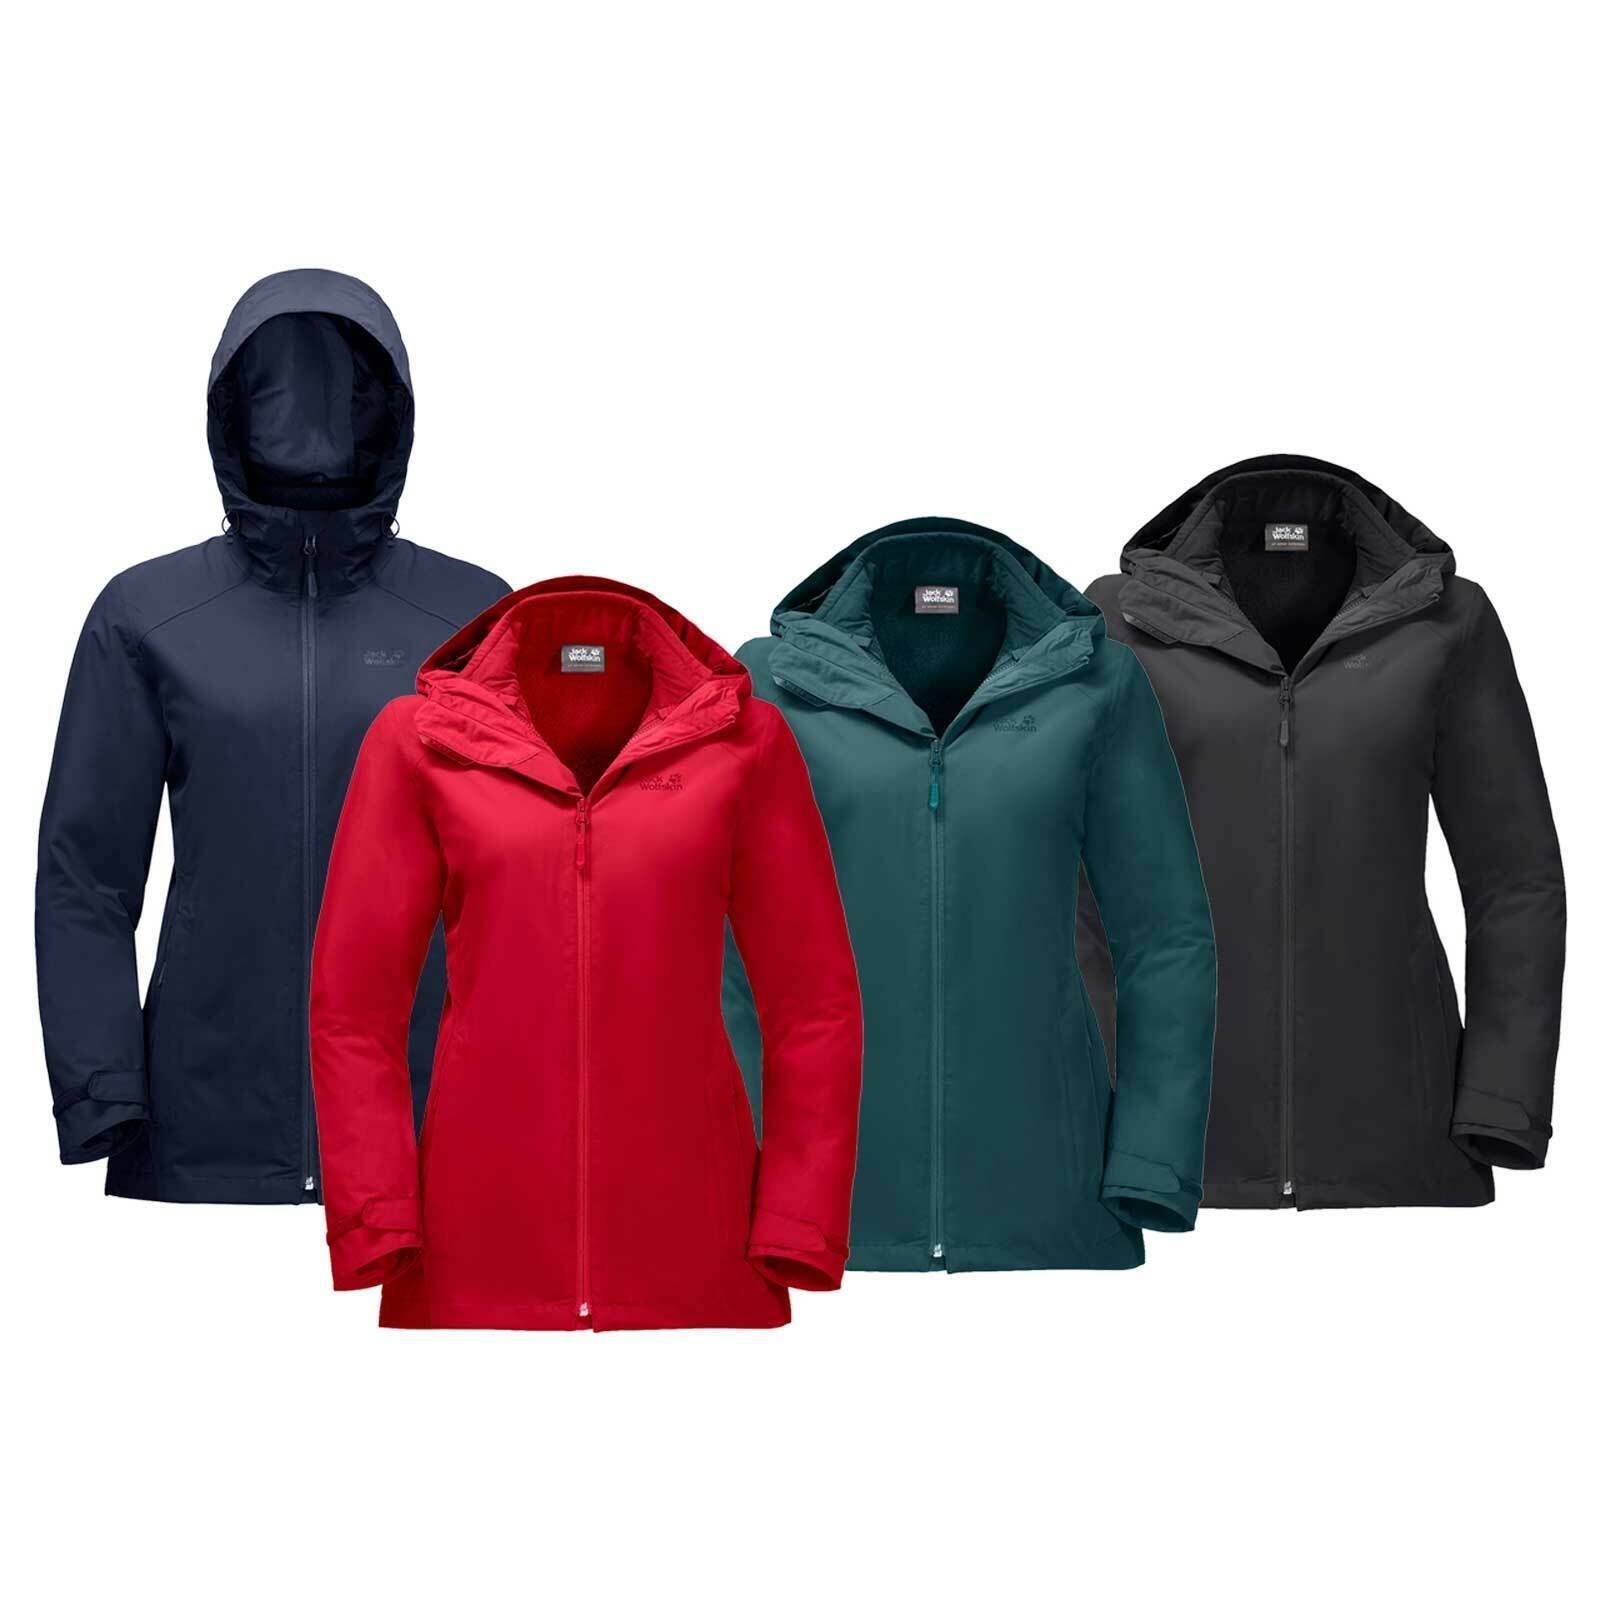 JACK Wolfskin Donna Norrle 3 in 1 Giacca RRP £160